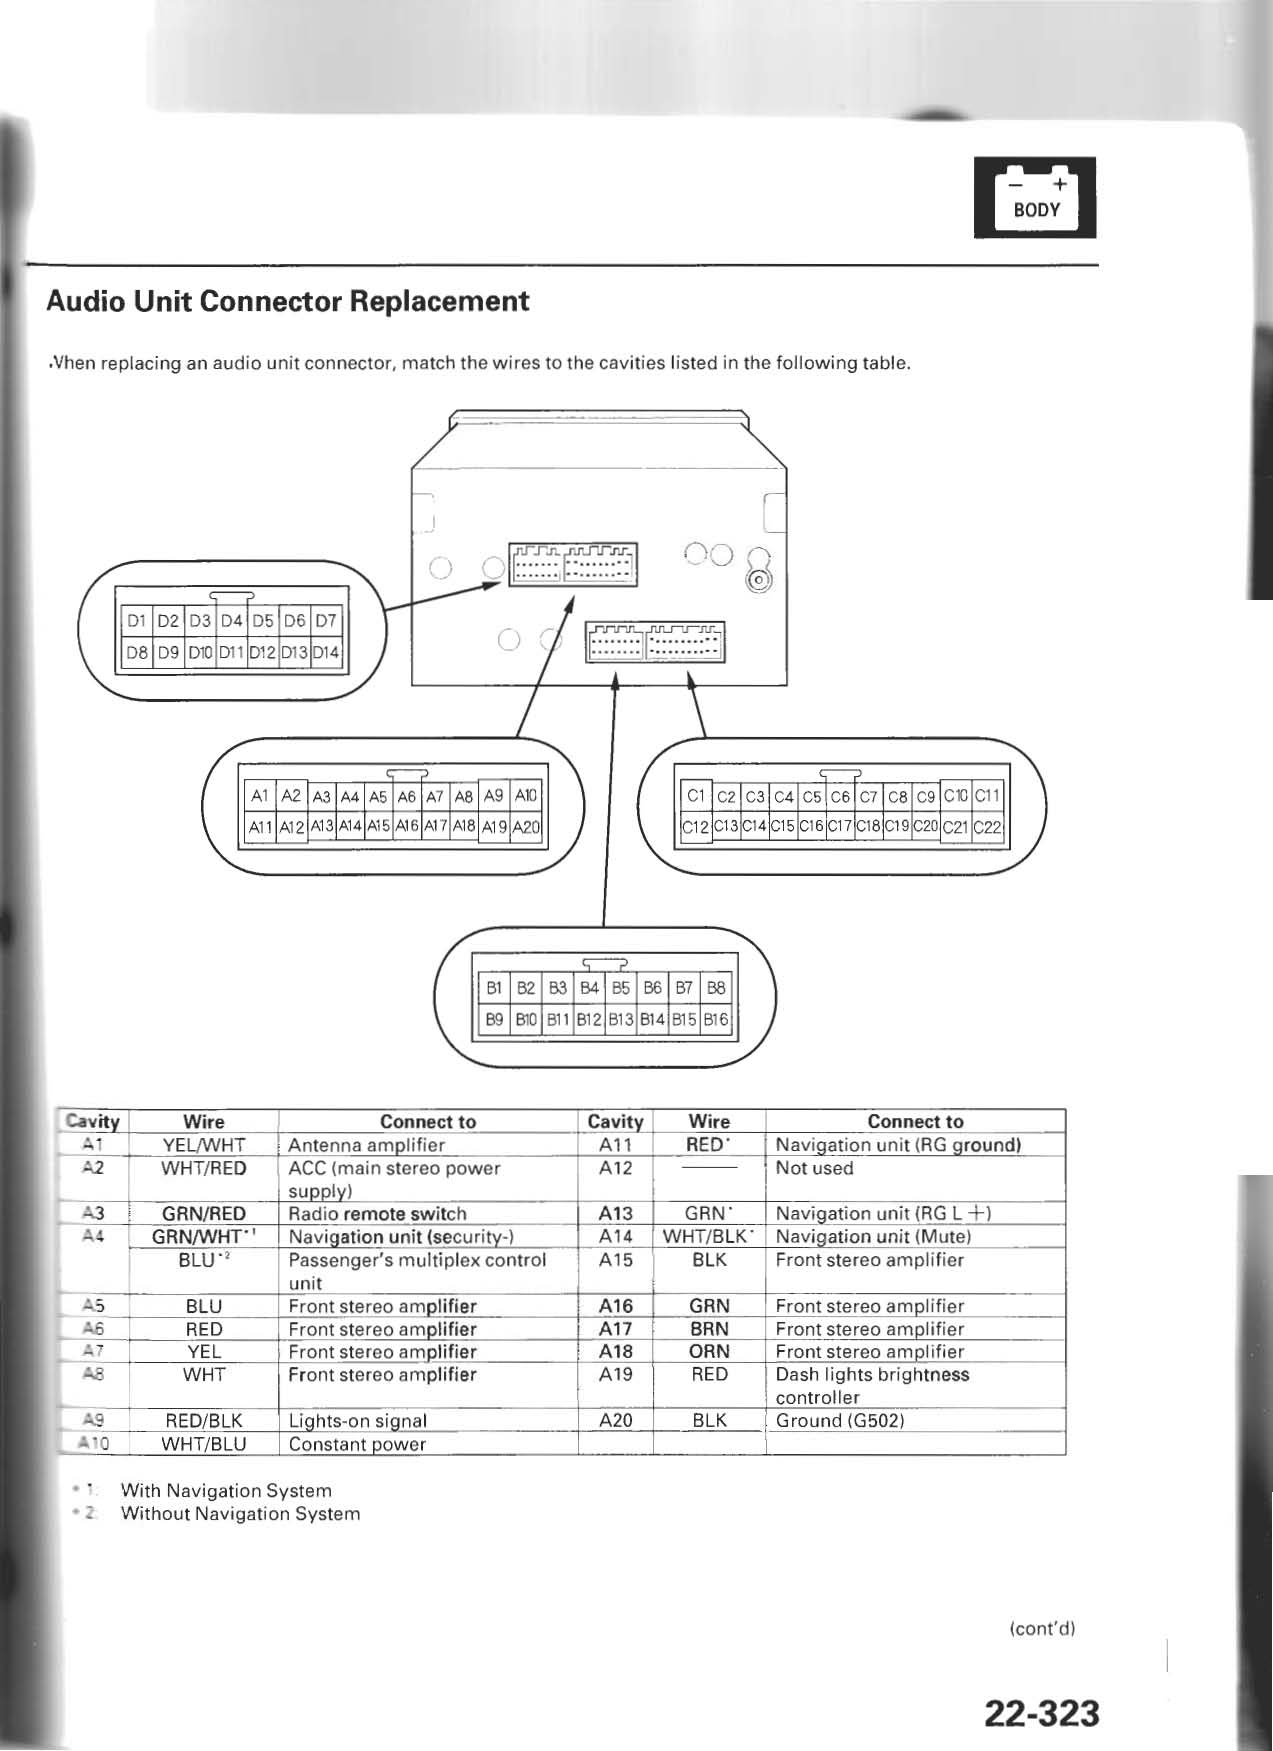 30384d1111169775 retrofit 01 04 mdx w bluetooth outs 2003 mdx radio retrofit 01 04 mdx w bluetooth page 2 acura mdx forum acura 2005 acura tl amp wiring diagram at bakdesigns.co